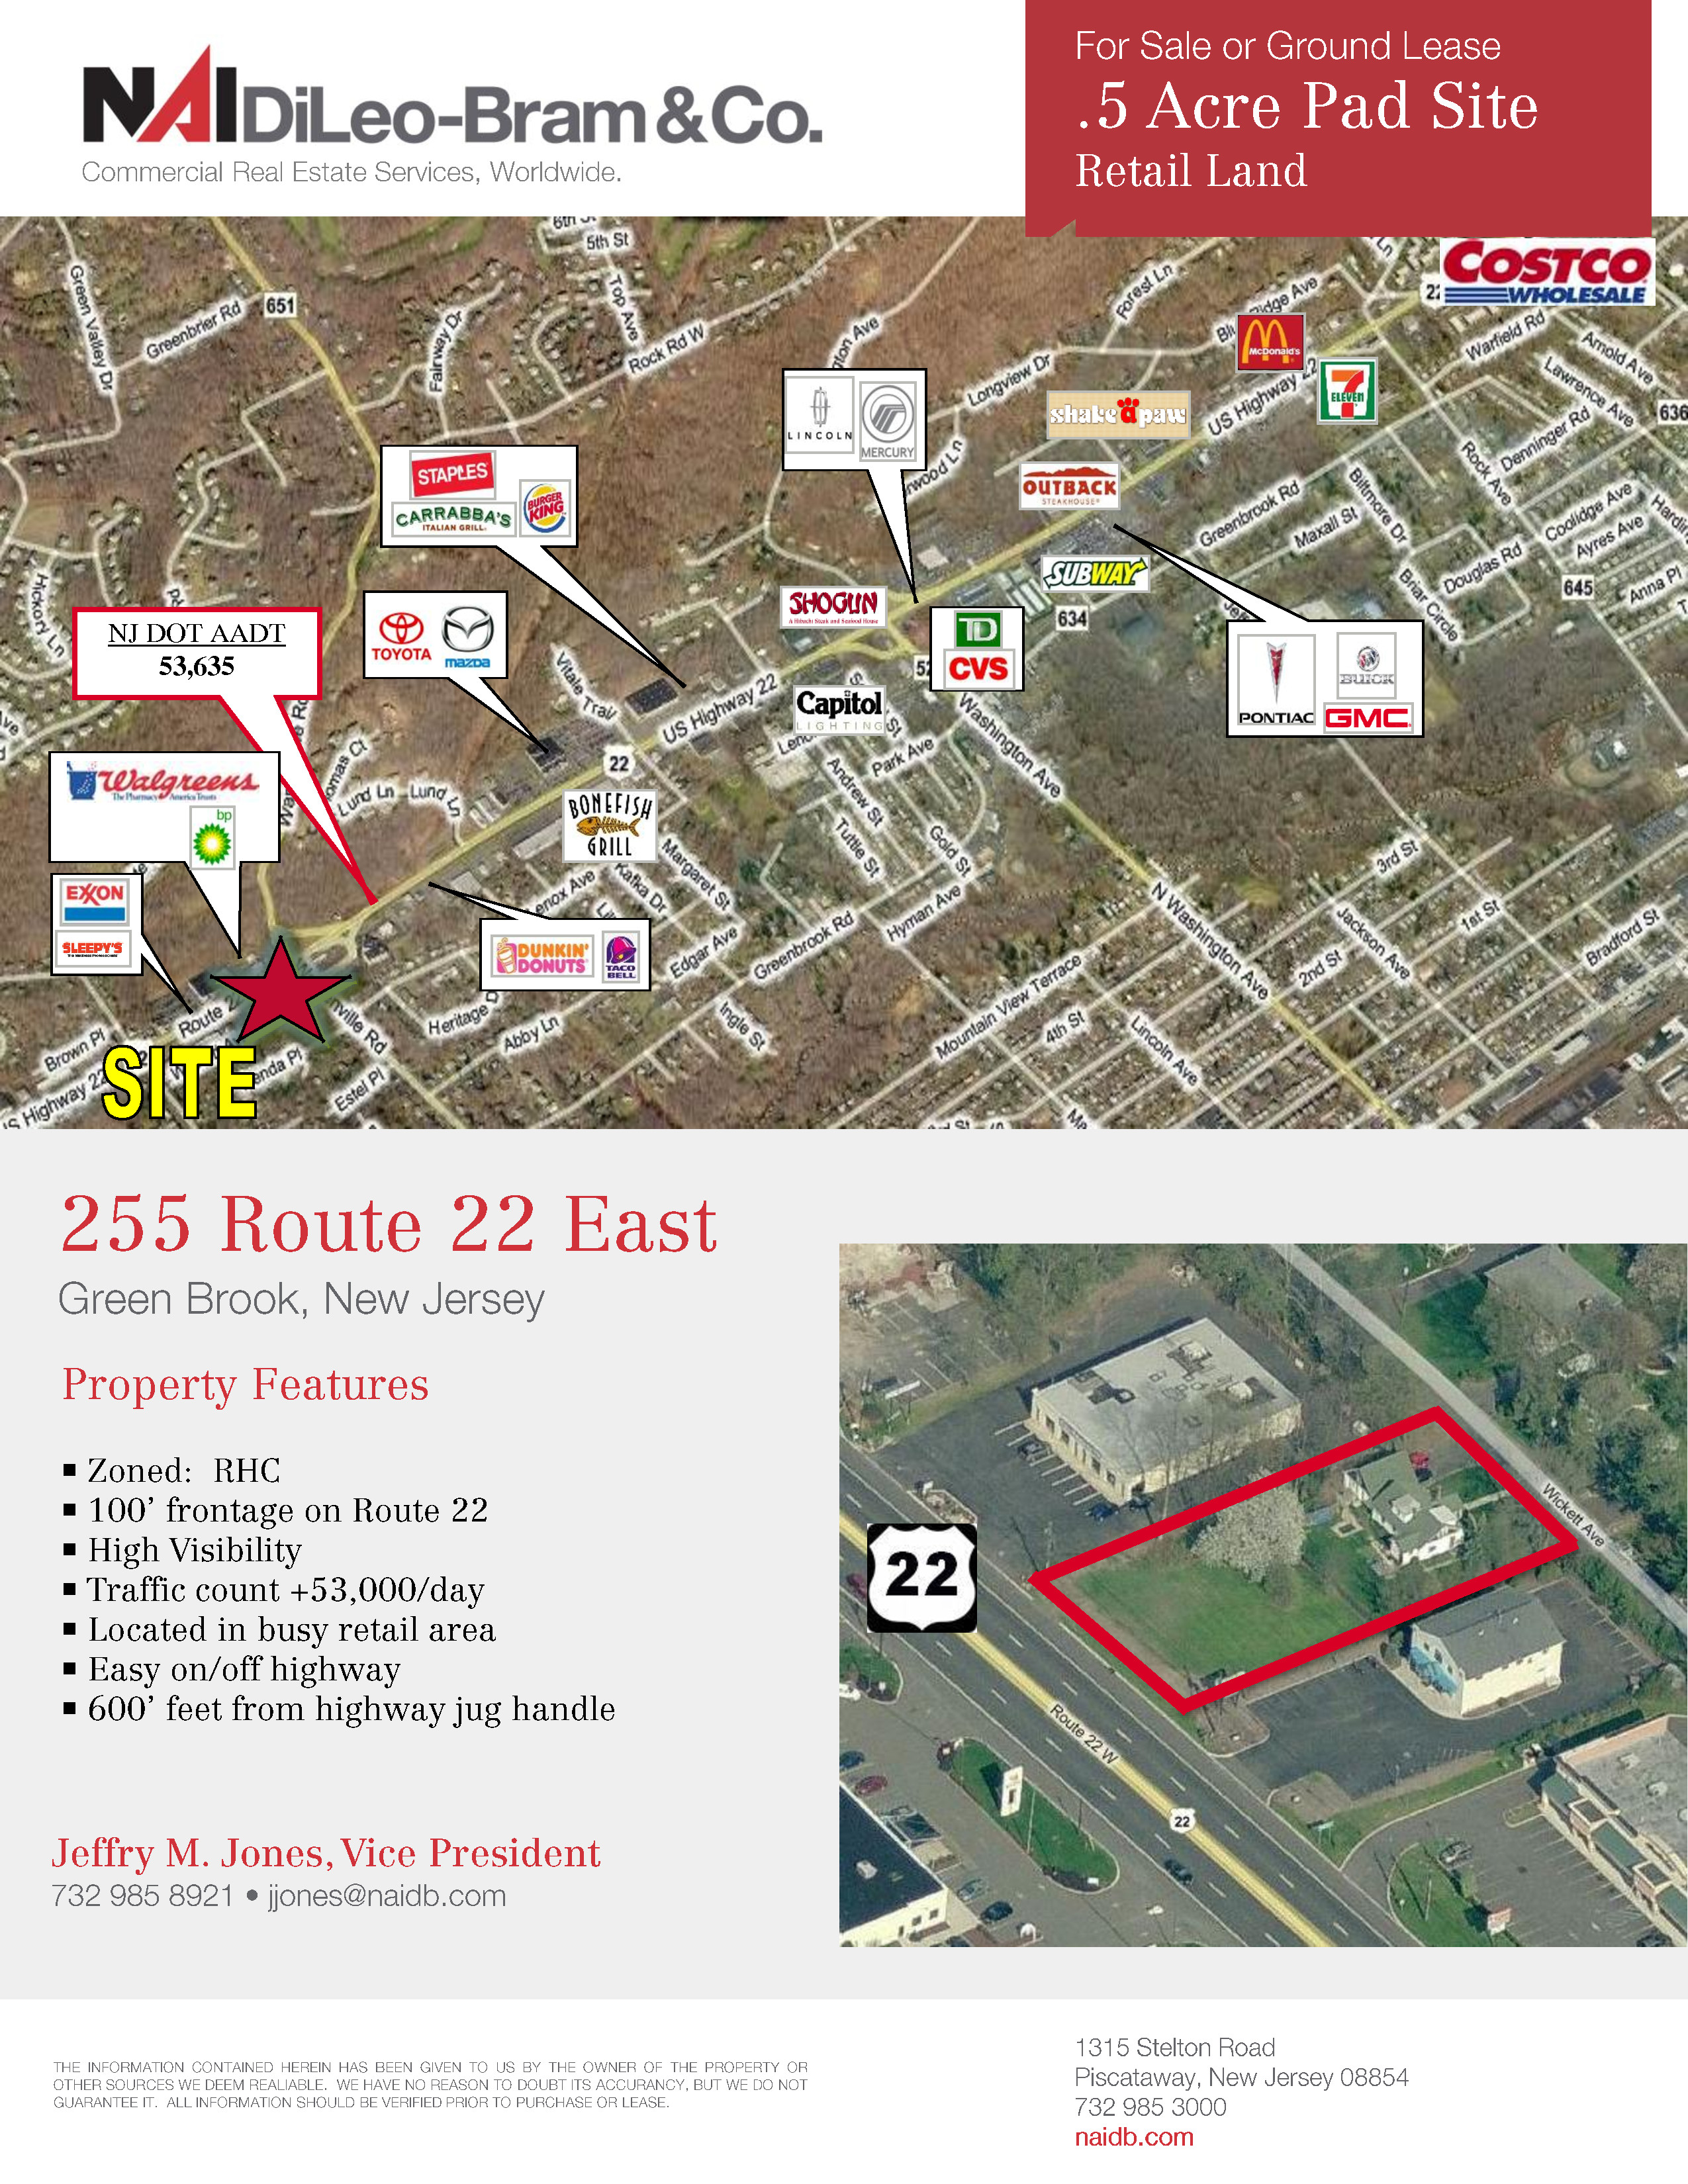 Green Brook Nj >> Retail Pad Site For Sale Or Lease 255 Route 22 East Green Brook Nj